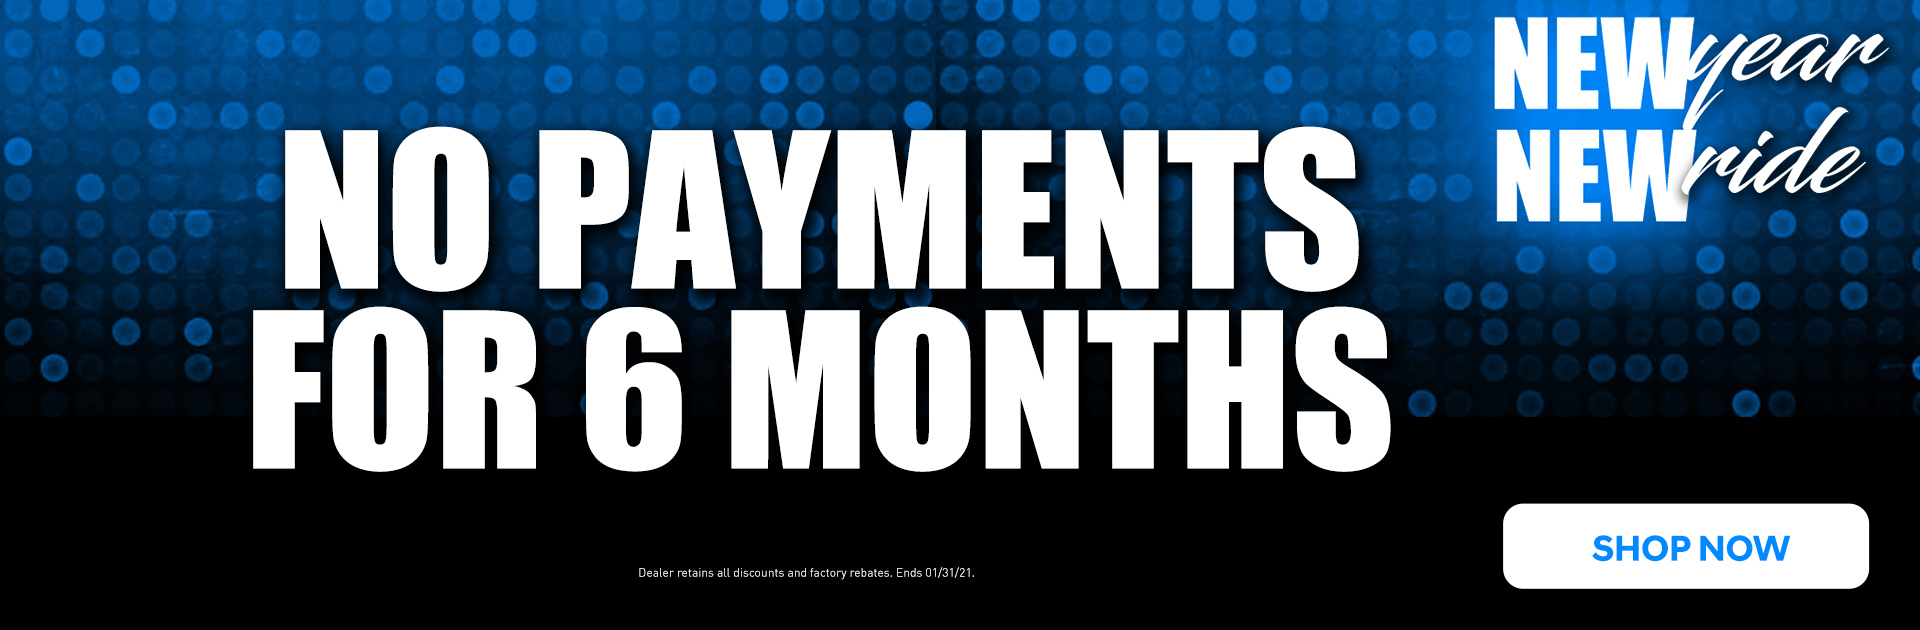 No Payments for 6 Months